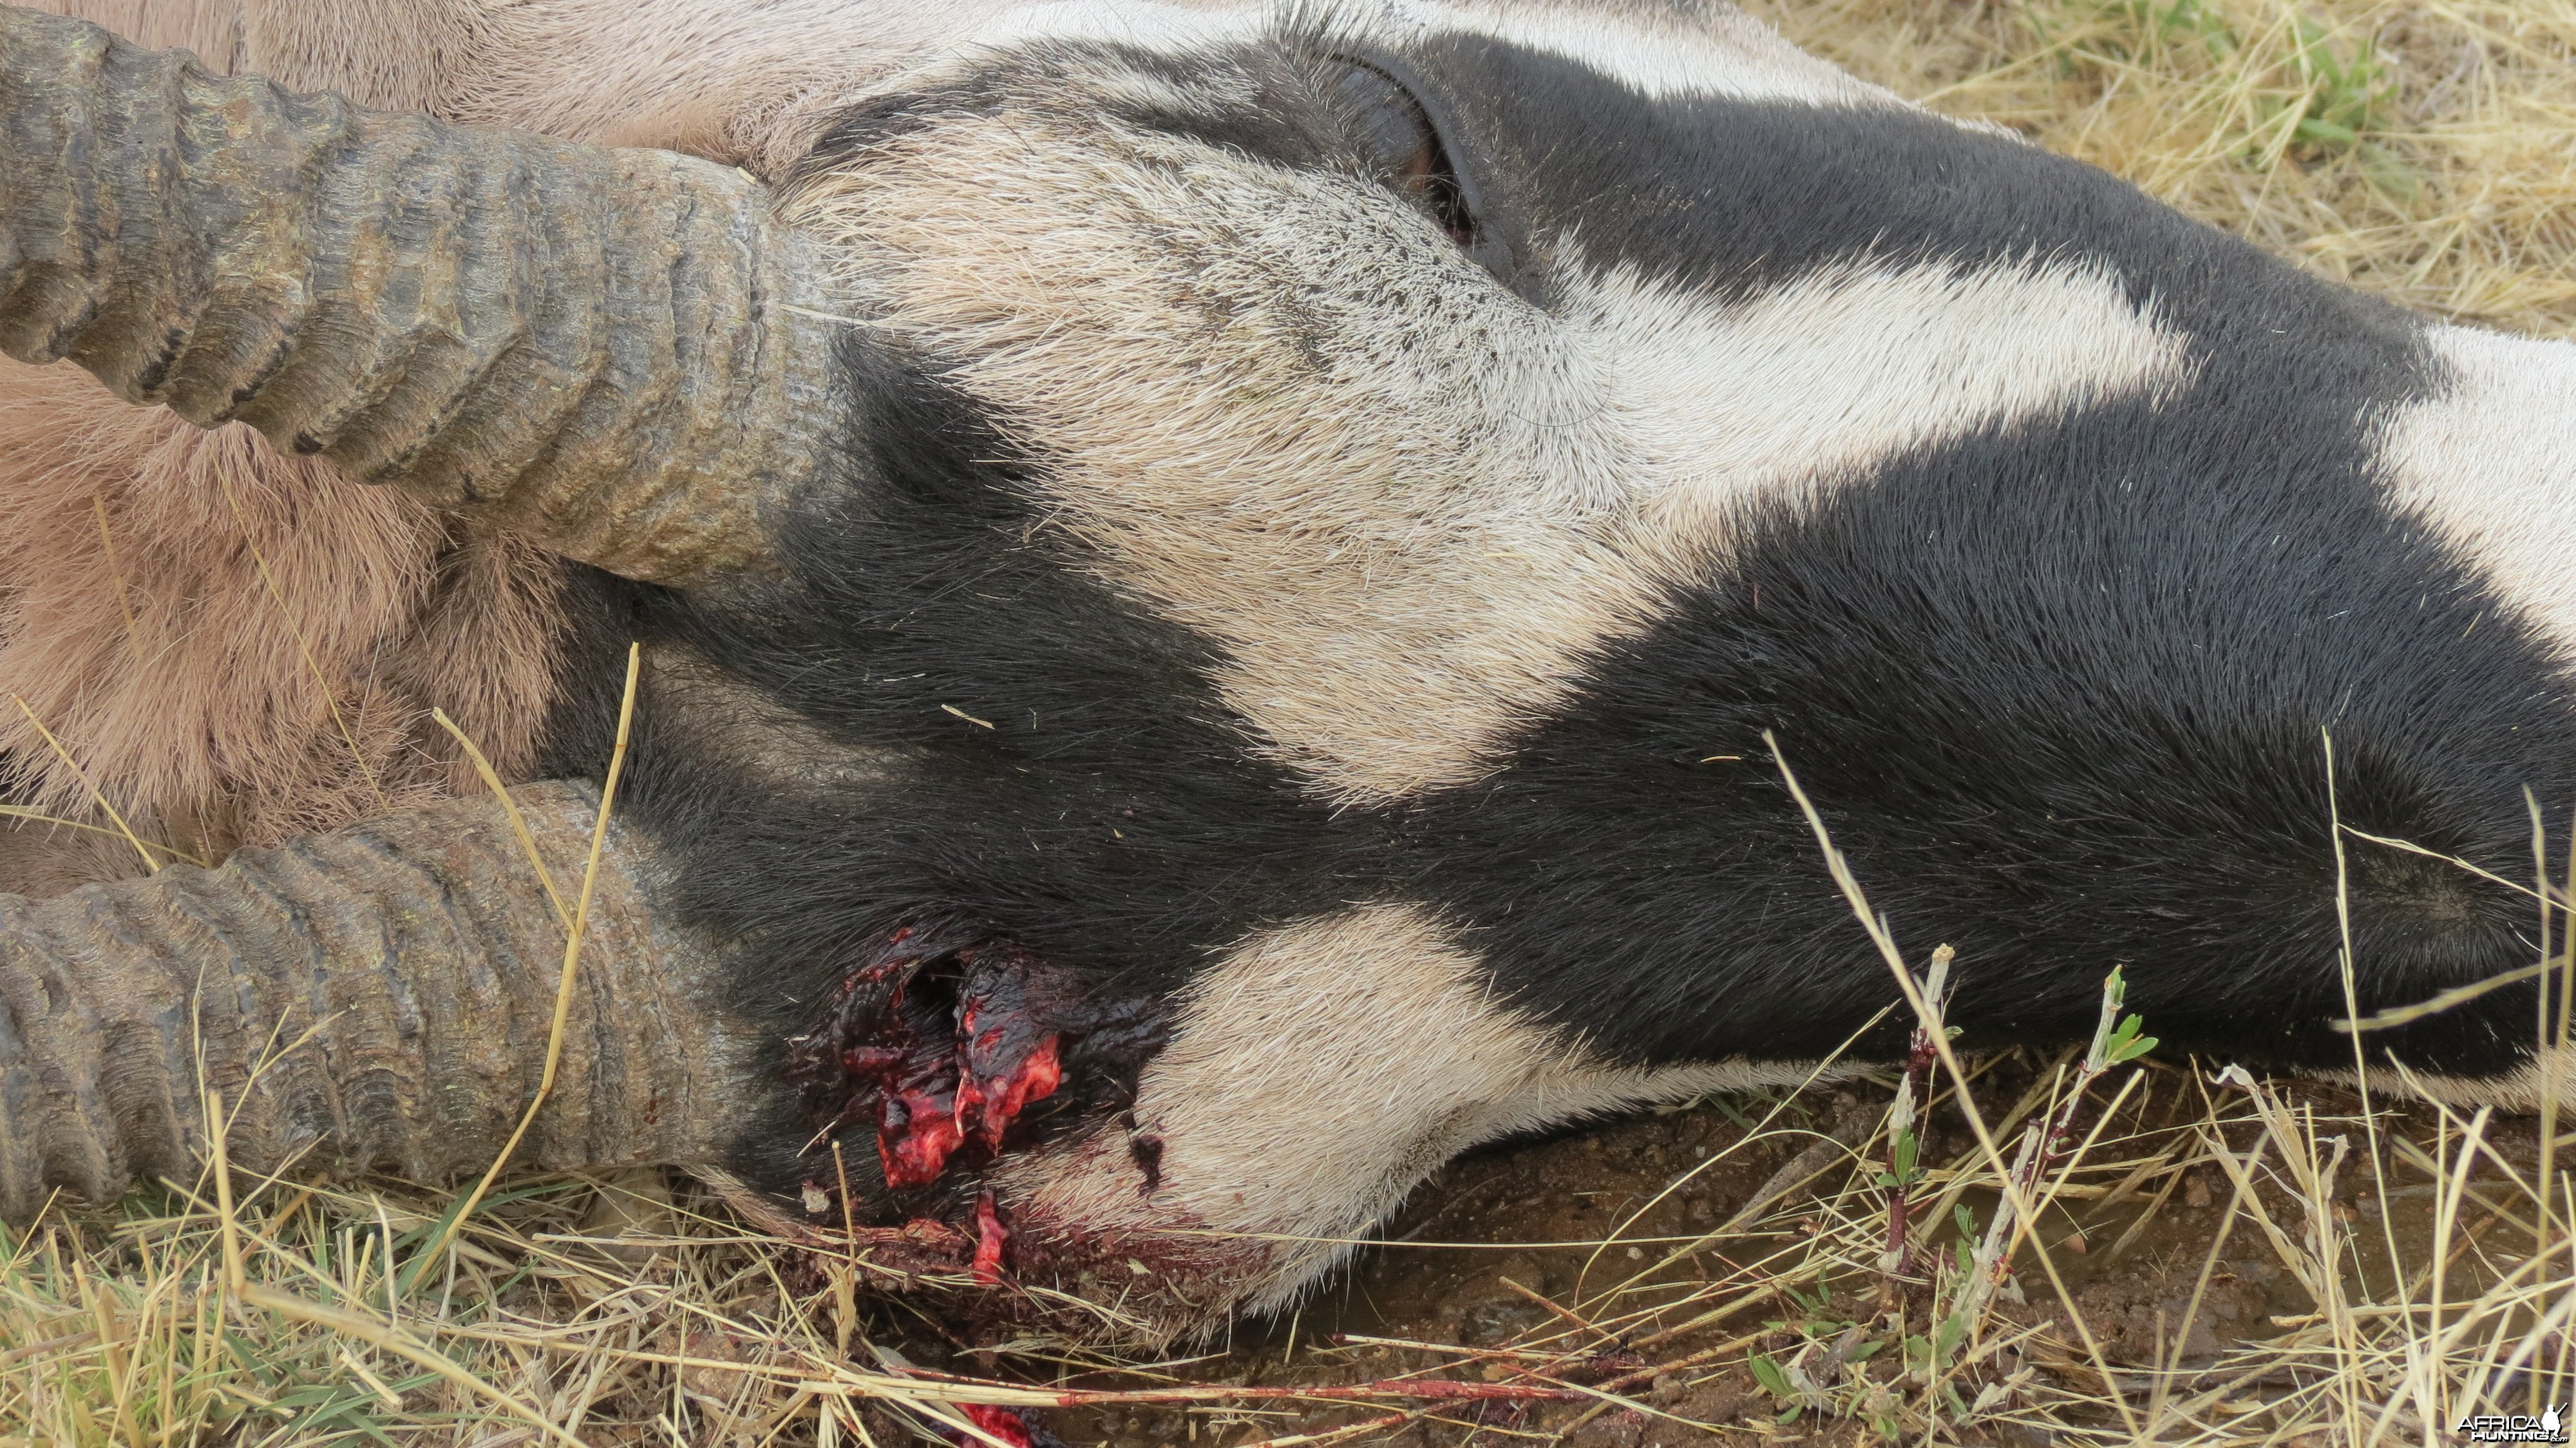 Gemsbok that died fighting!